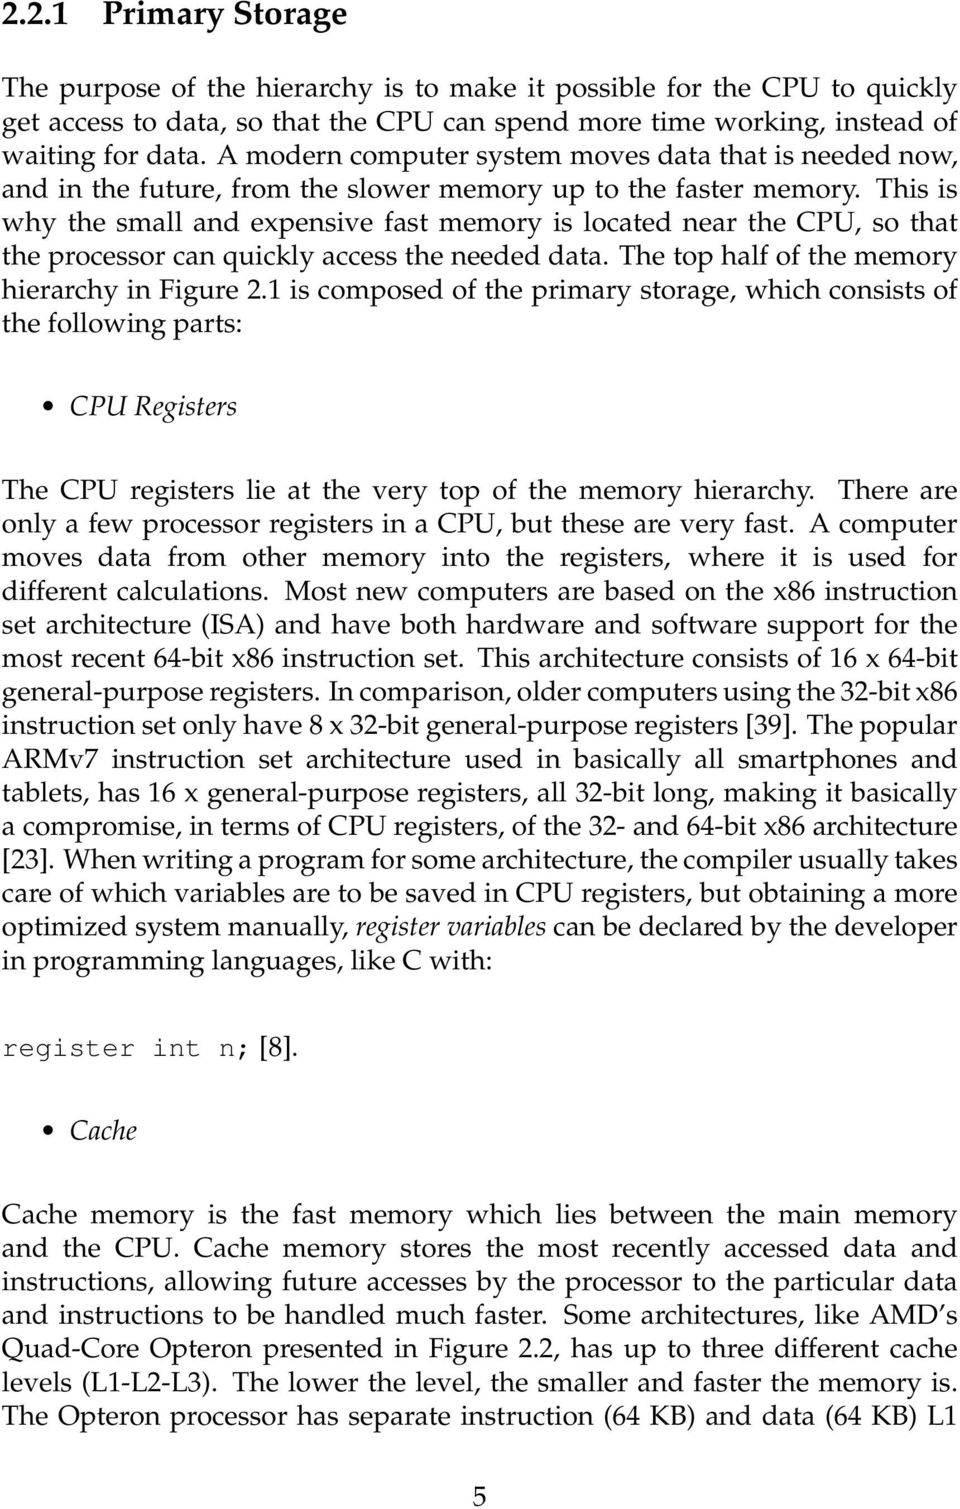 This is why the small and expensive fast memory is located near the CPU, so that the processor can quickly access the needed data. The top half of the memory hierarchy in Figure 2.